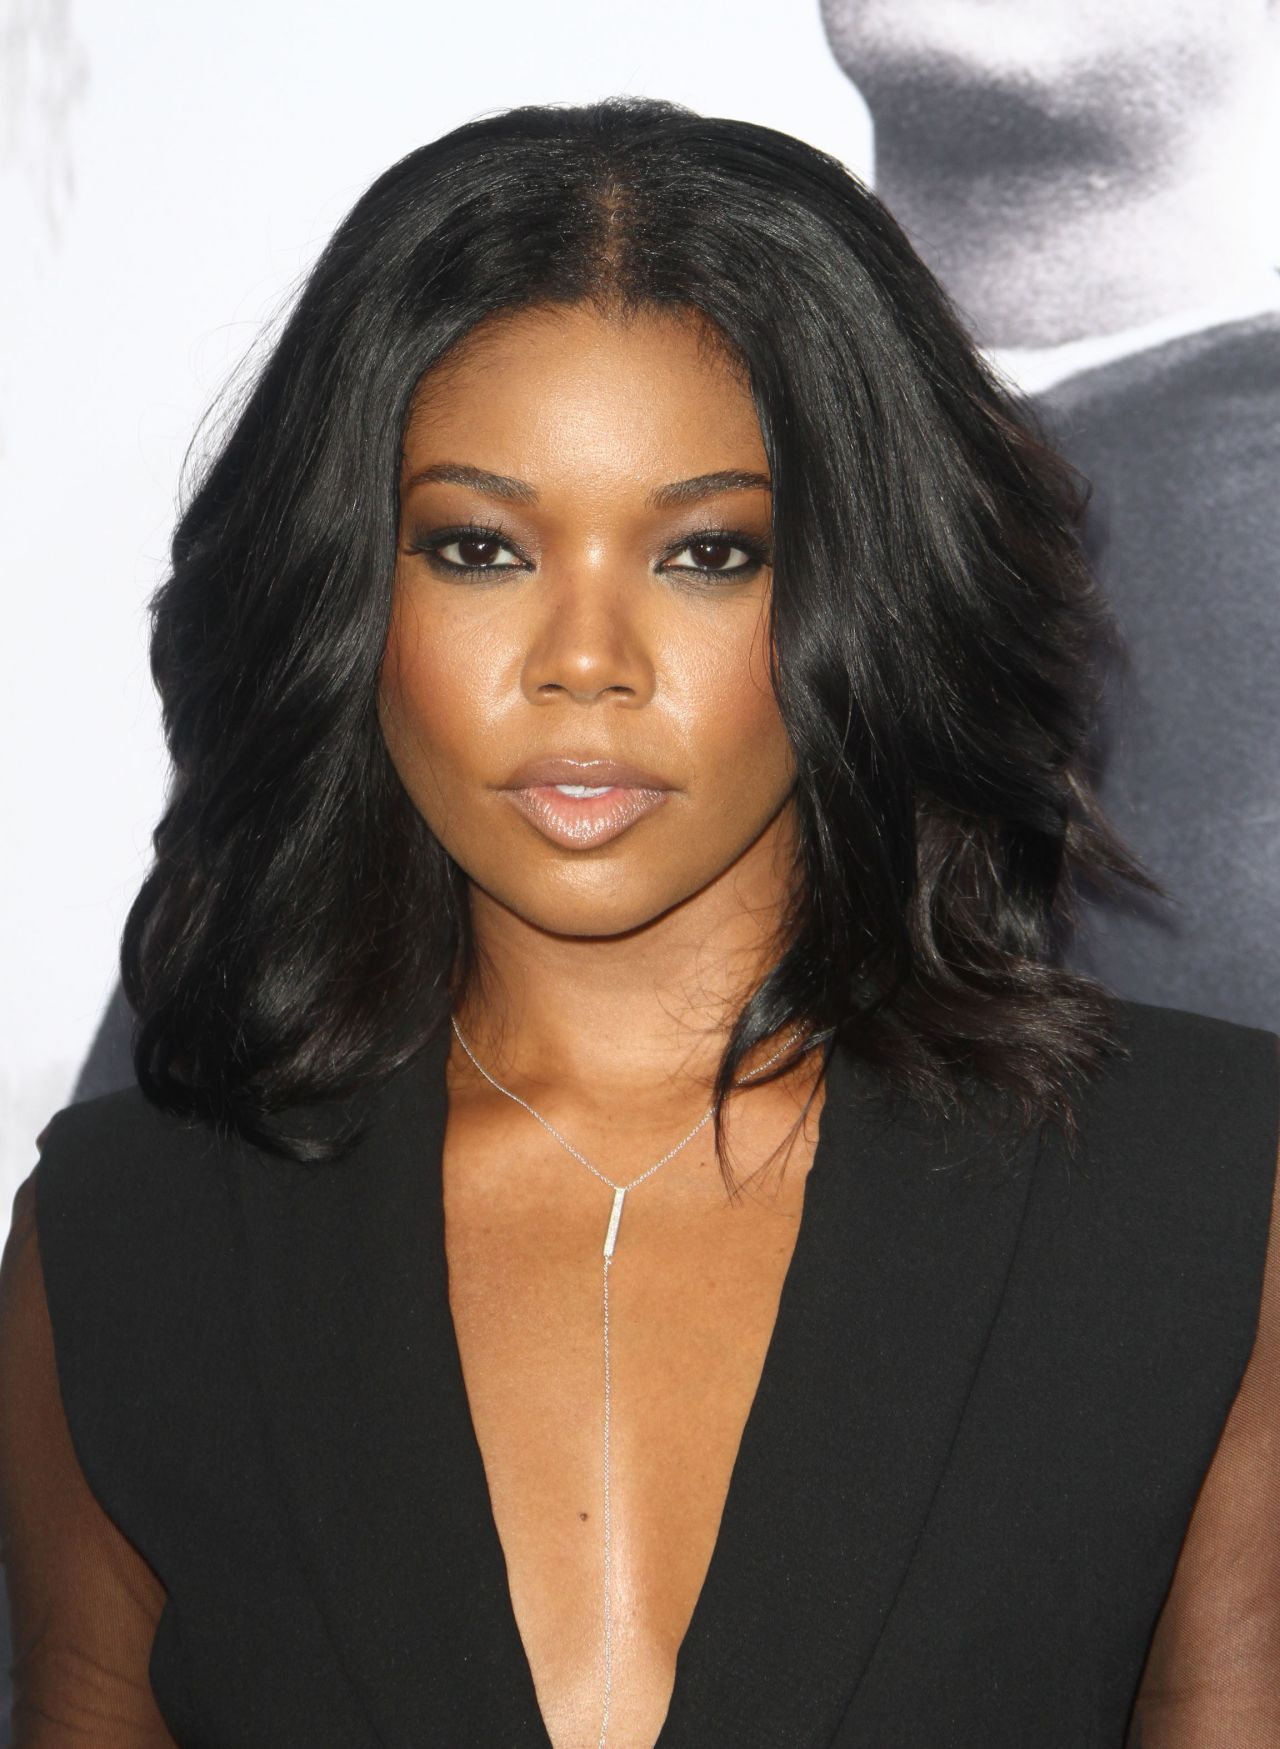 how tall is gabrielle union